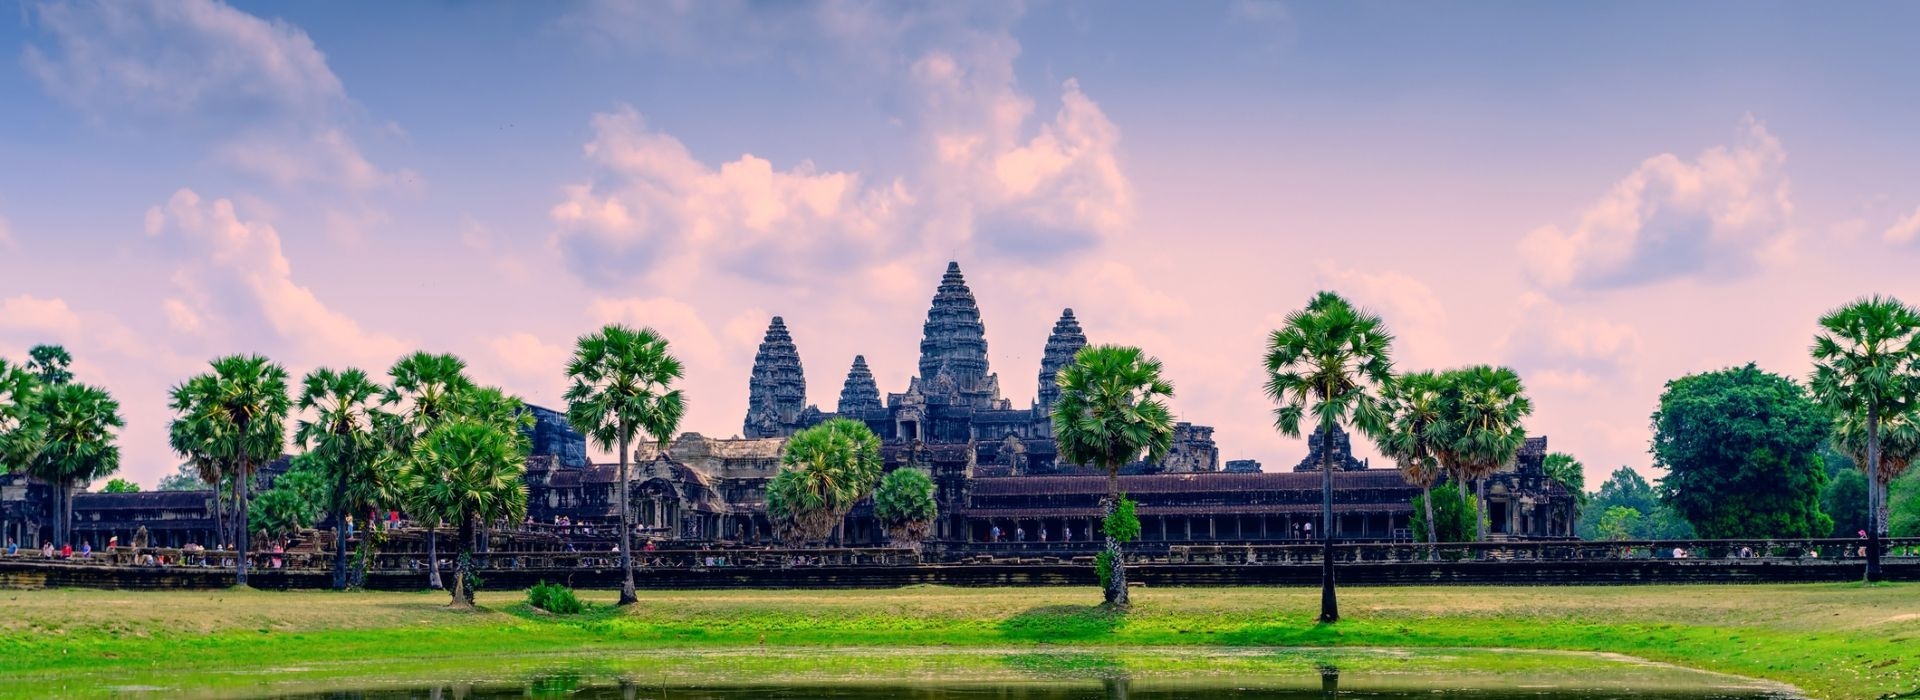 River cruise Tours in Siem Reap